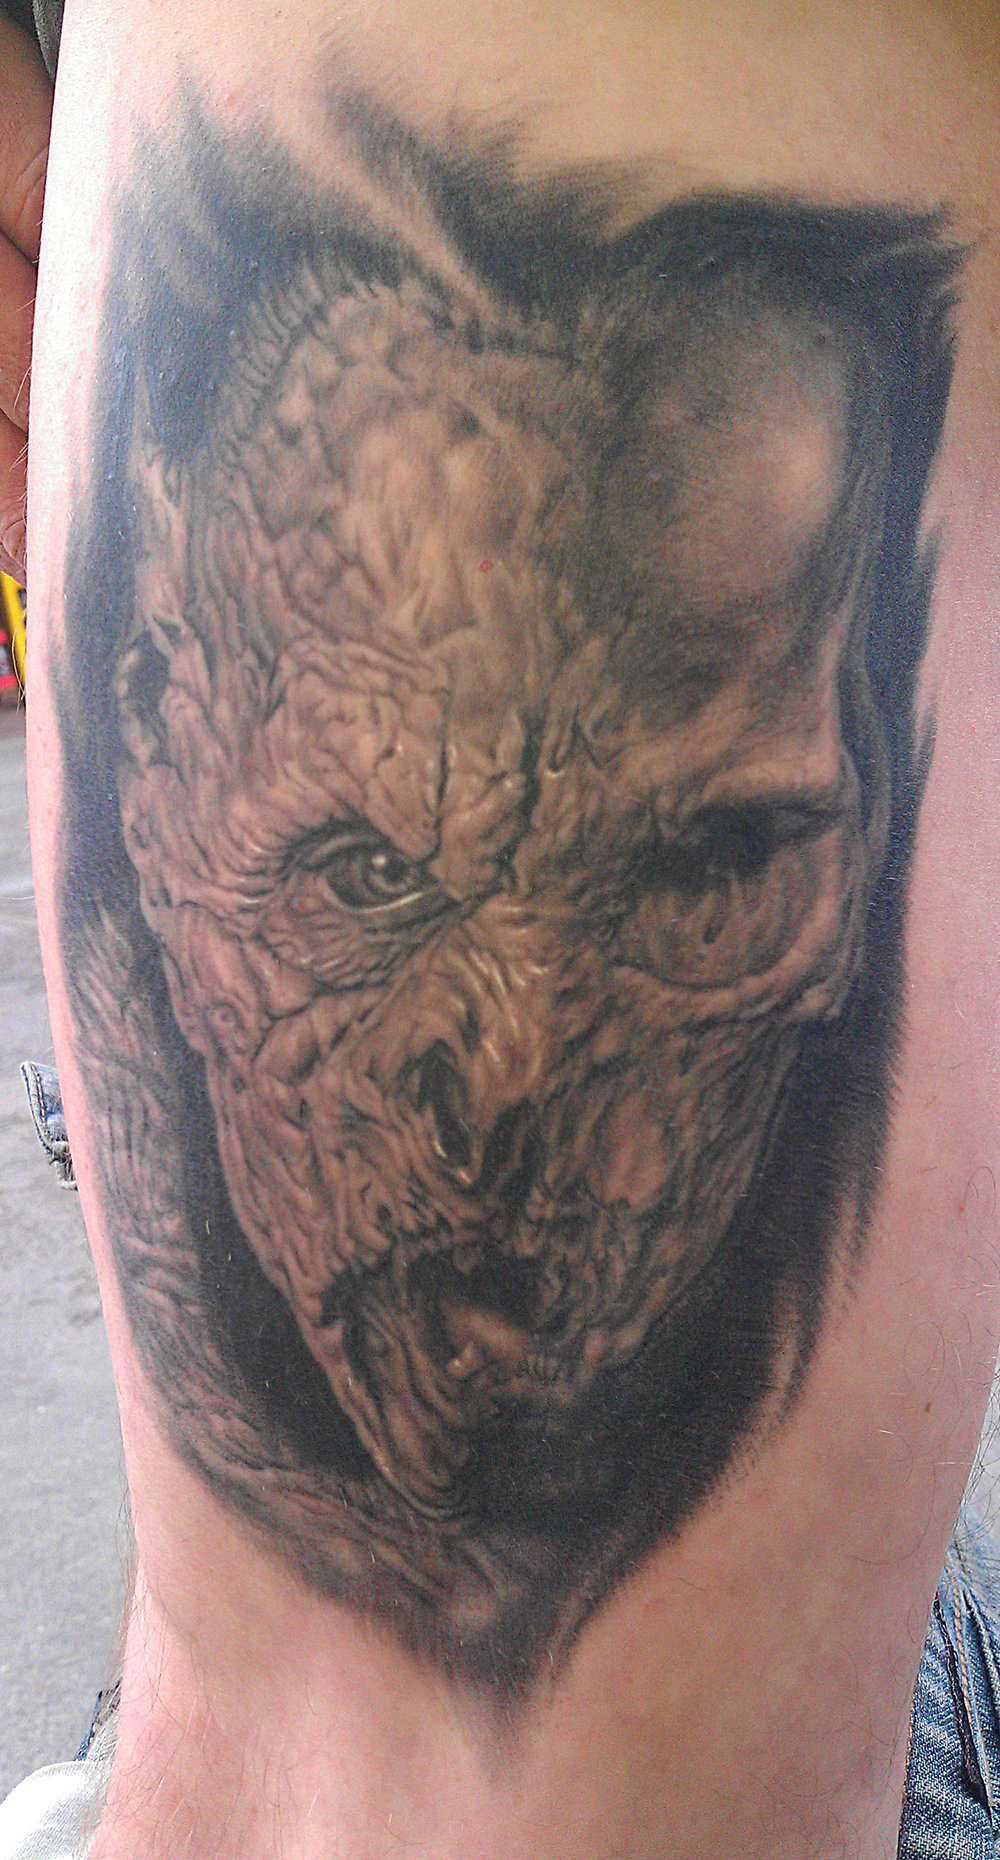 Black and Grey Vampire/Skull Horror Tattoo, (healed) on thigh, Transilvania Tattoo Expo, Romania